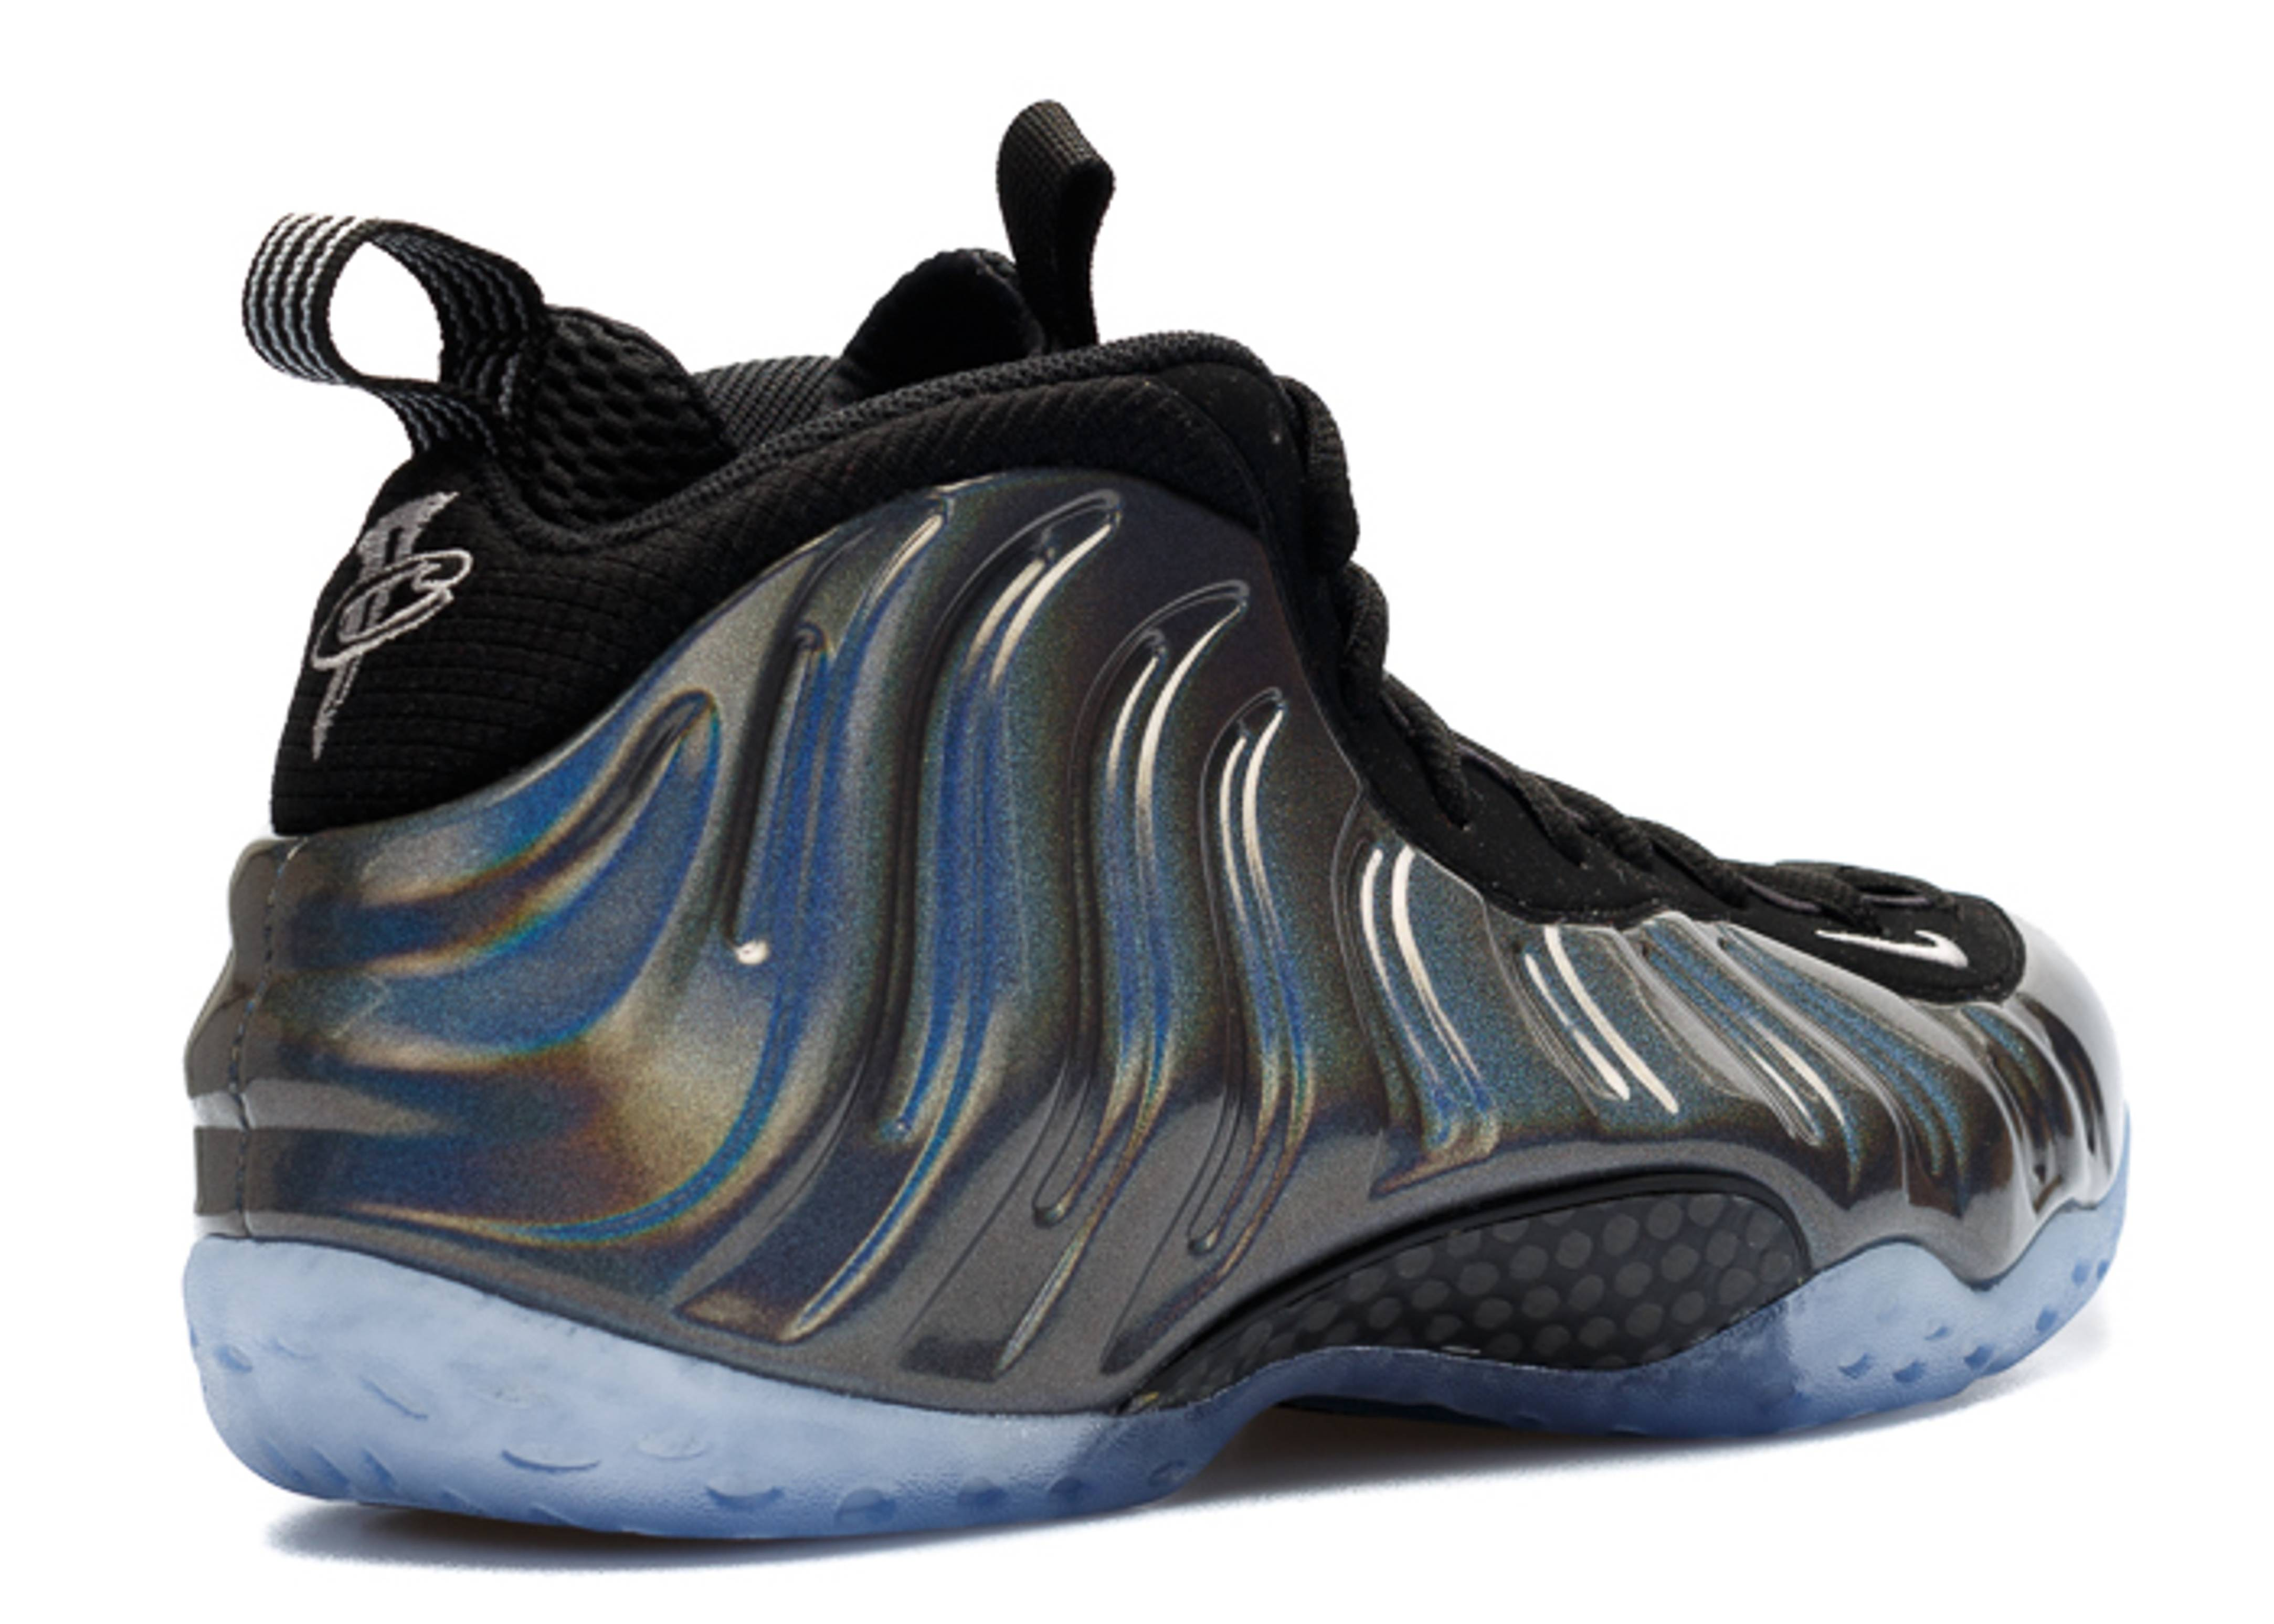 Nike Air Foamposite One Dirty CopperKixclusive